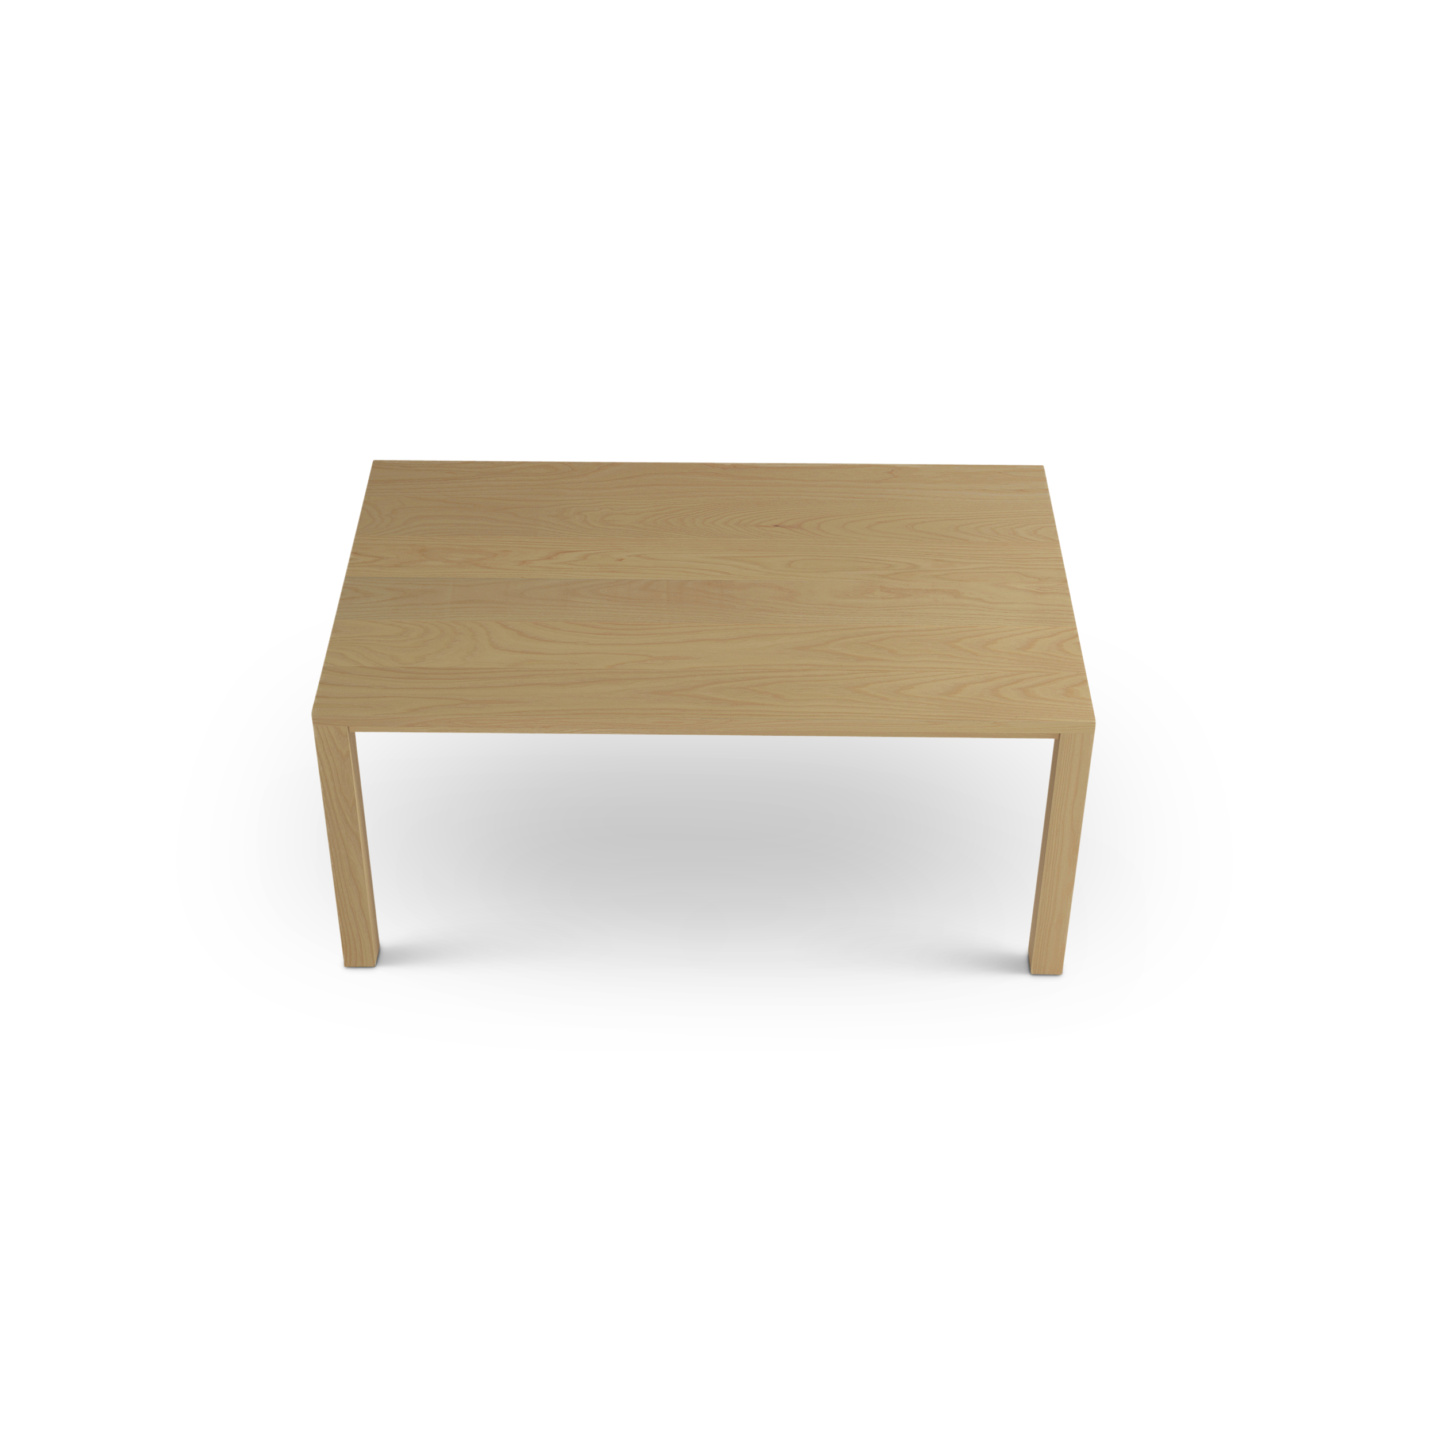 Solid Ash table with square legs